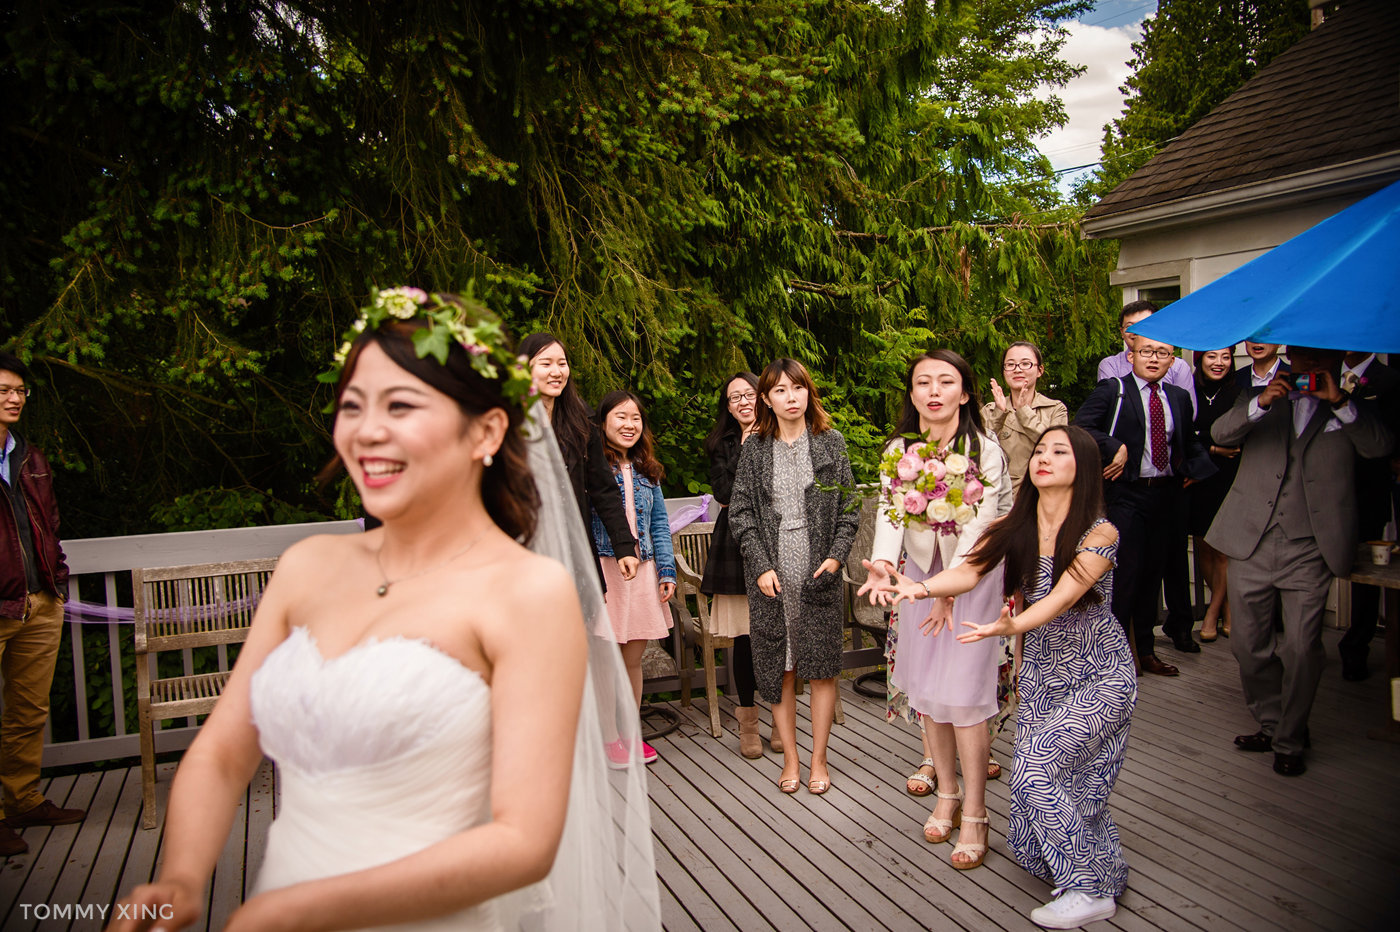 Seattle Wedding and pre wedding Los Angeles Tommy Xing Photography 西雅图洛杉矶旧金山婚礼婚纱照摄影师 134.jpg